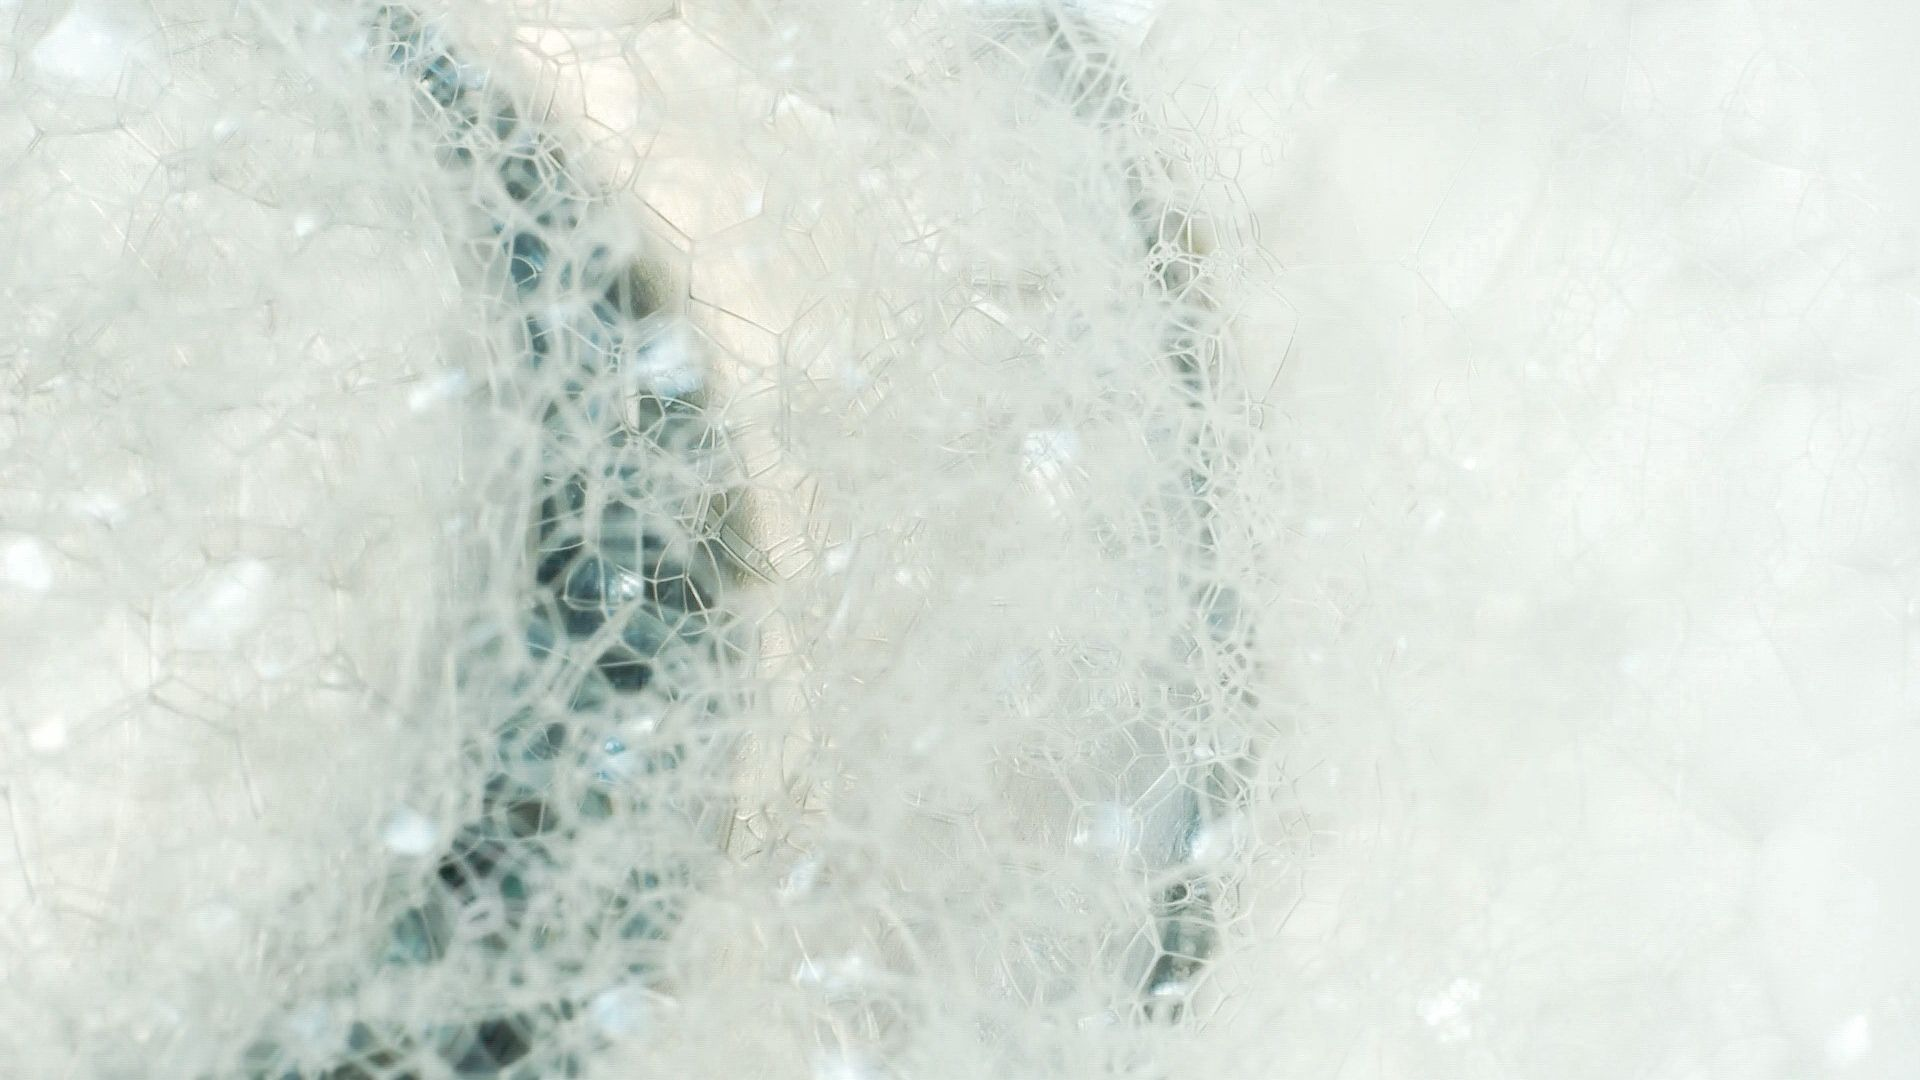 76264 download wallpaper Macro, Foam, Background, Bubbles screensavers and pictures for free